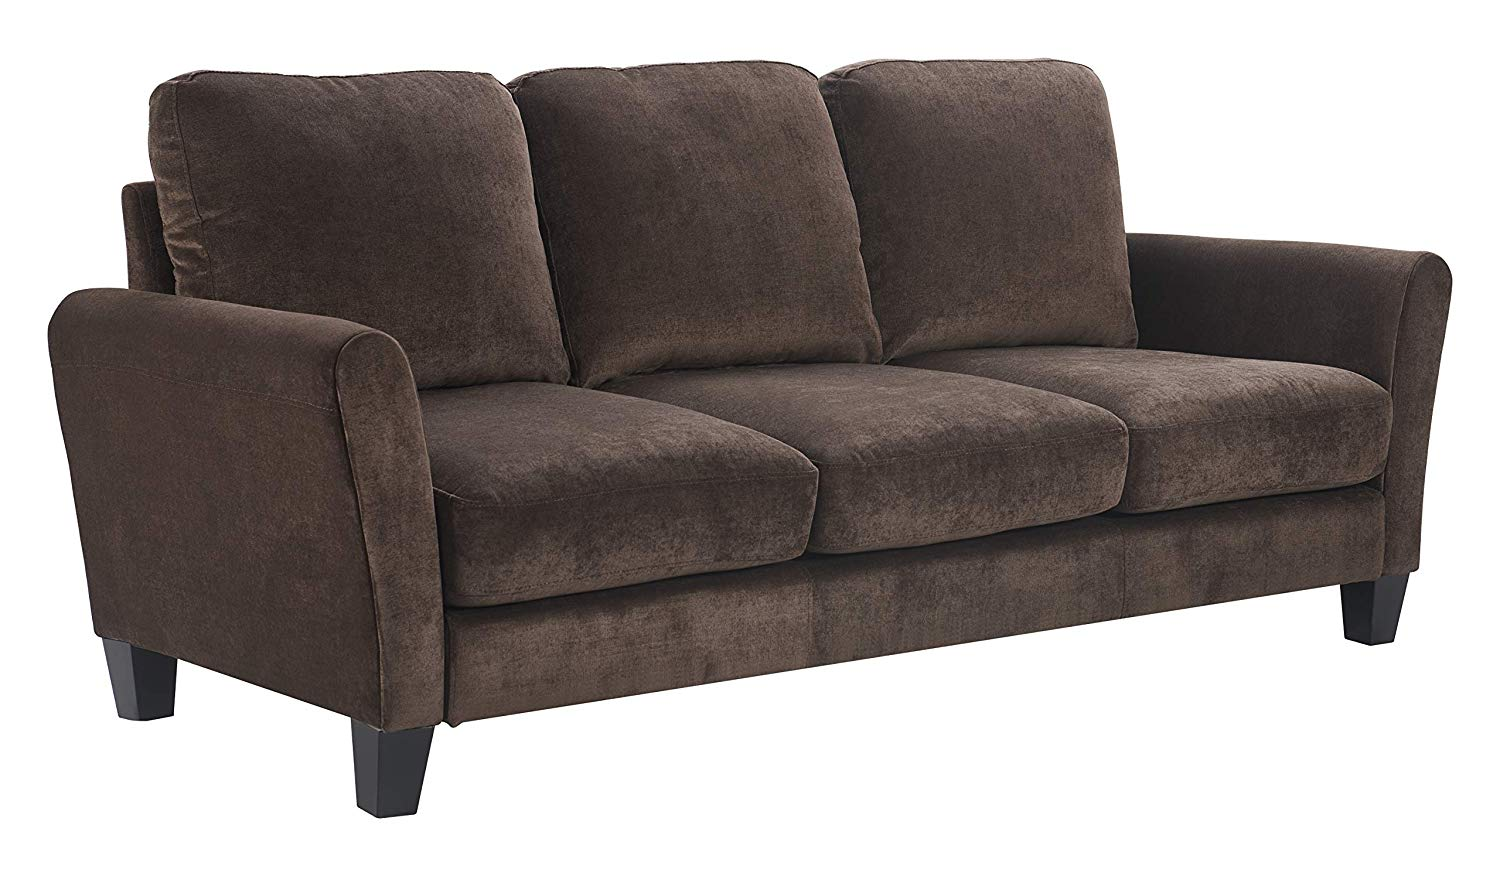 "Serta Deep Seating Astoria 78"" Sofa in Concord Tan"